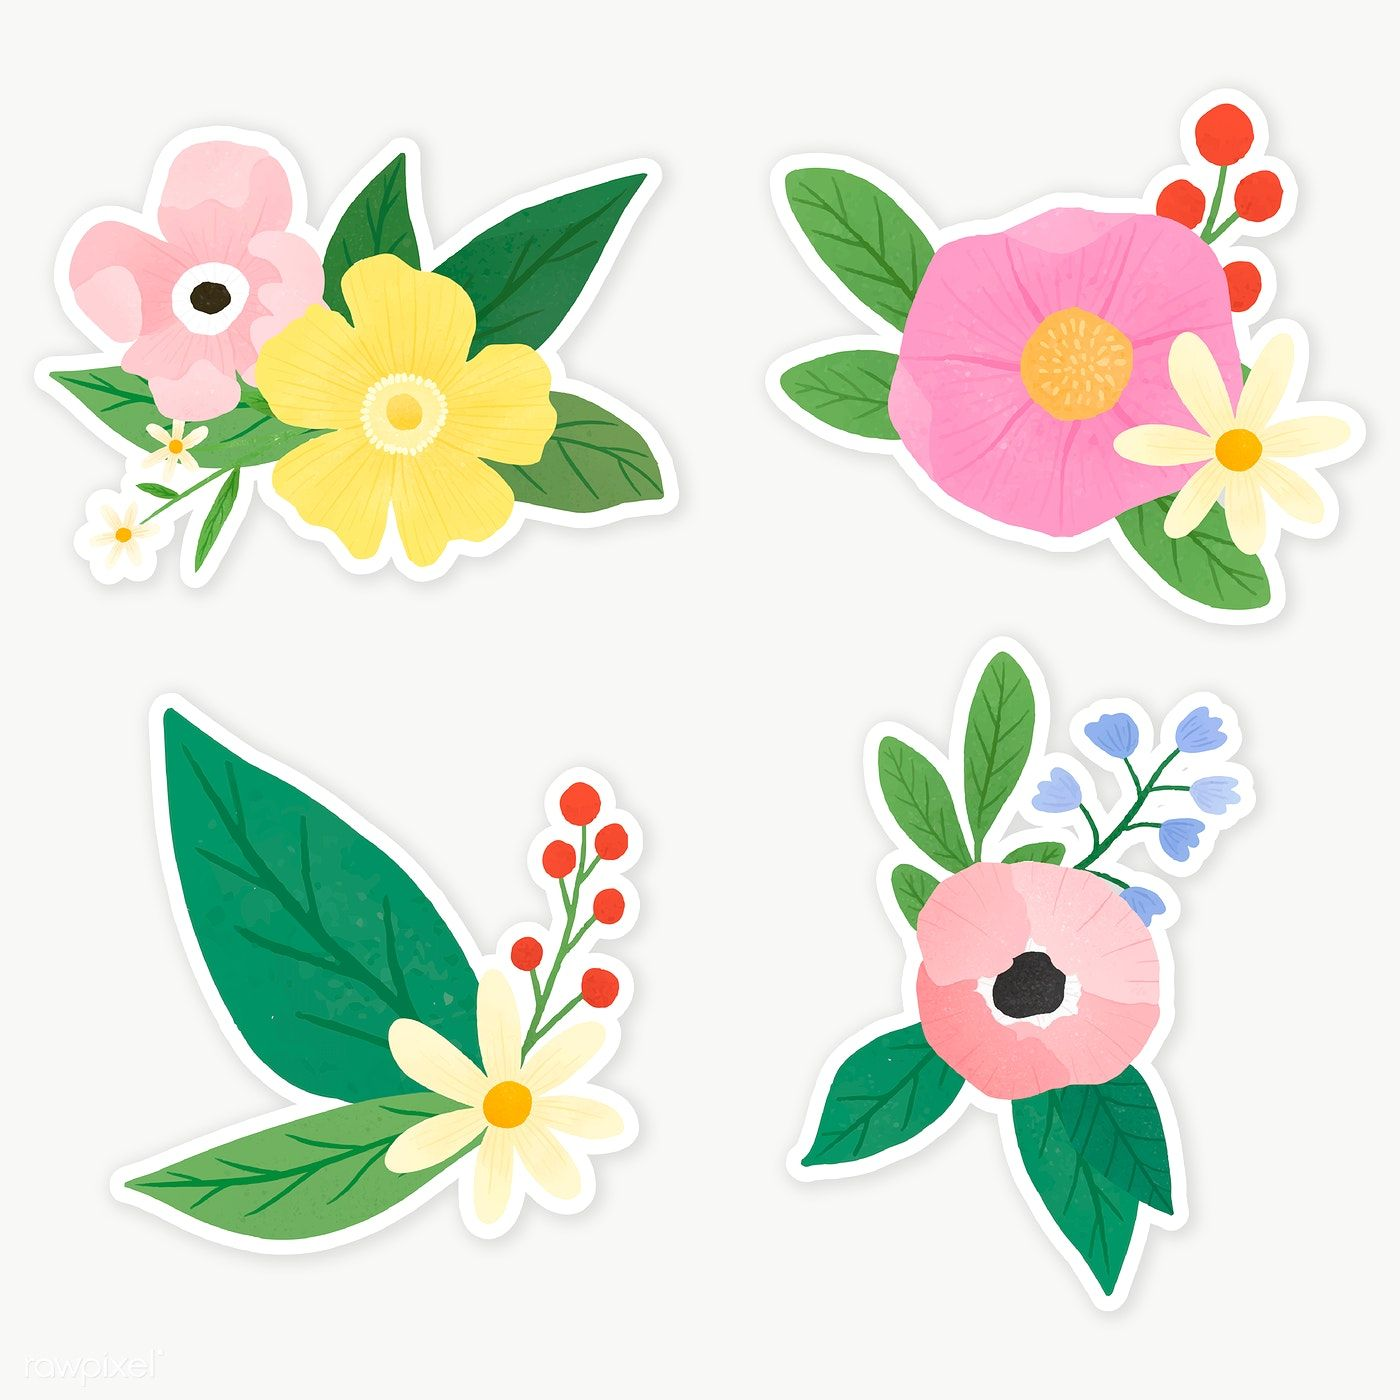 Colorful Floral Sticker Collection Transparent Png Premium Image By Rawpixel Com Katie Moir Floral Stickers Flower Clipart Flower Printable